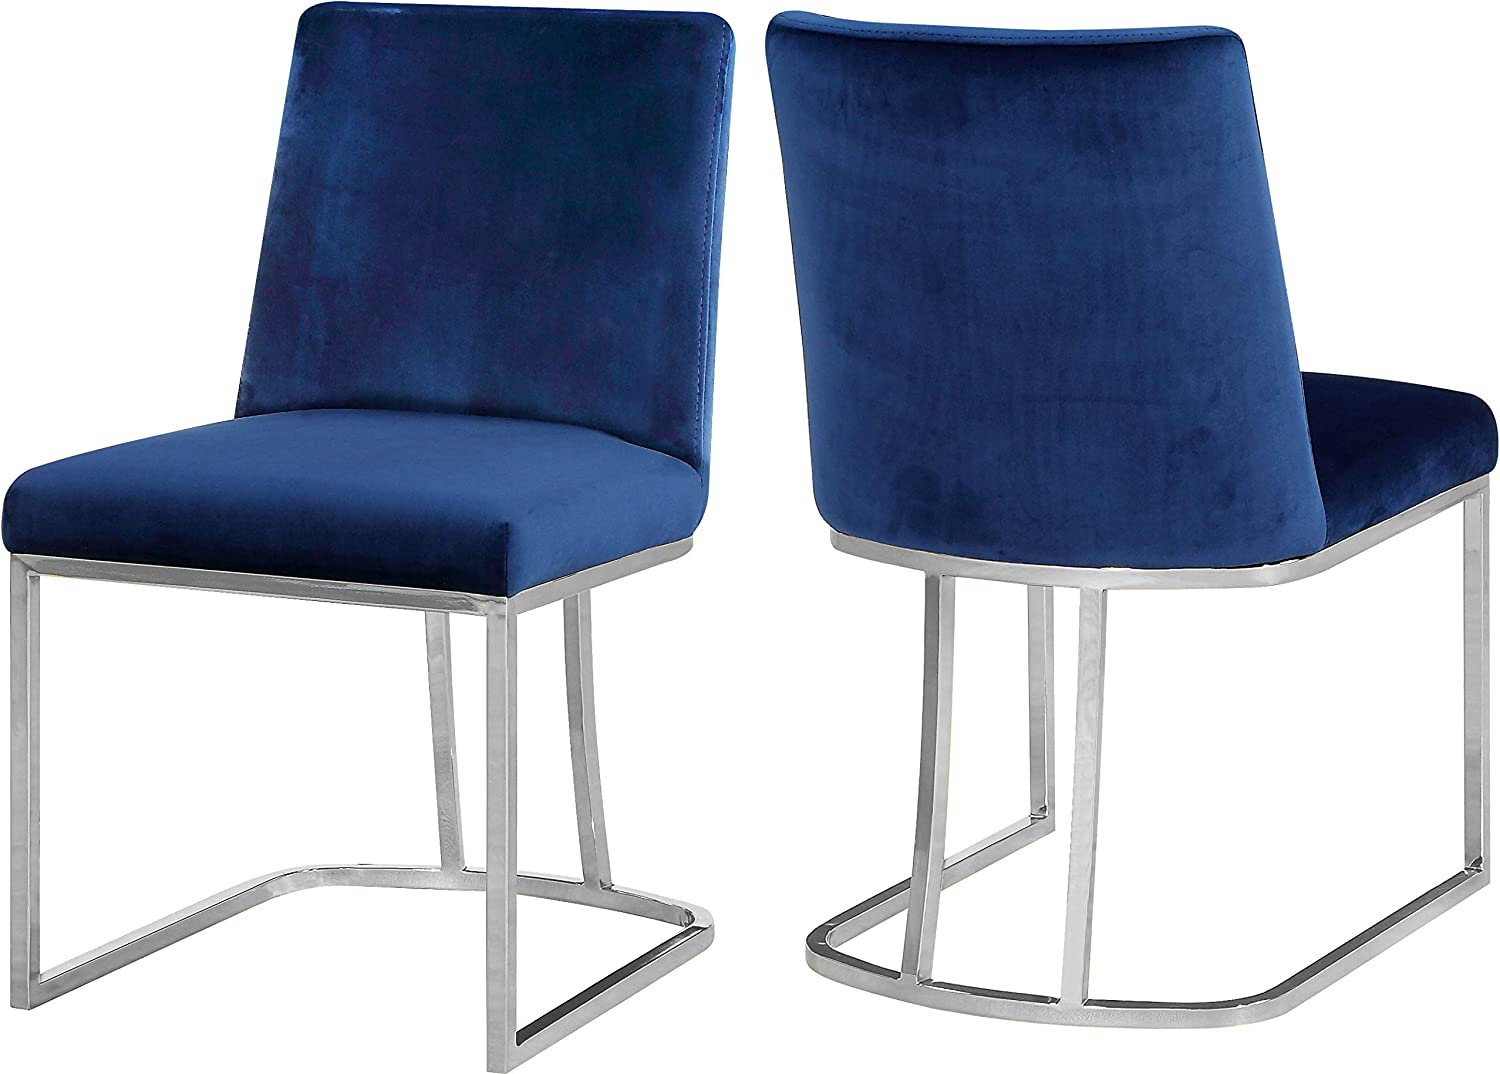 Meridian Furniture Heidi Collection Modern | Contemporary Velvet Upholstered Dining Chair with Polished Chrome Metal Frame, Set of 2, 19